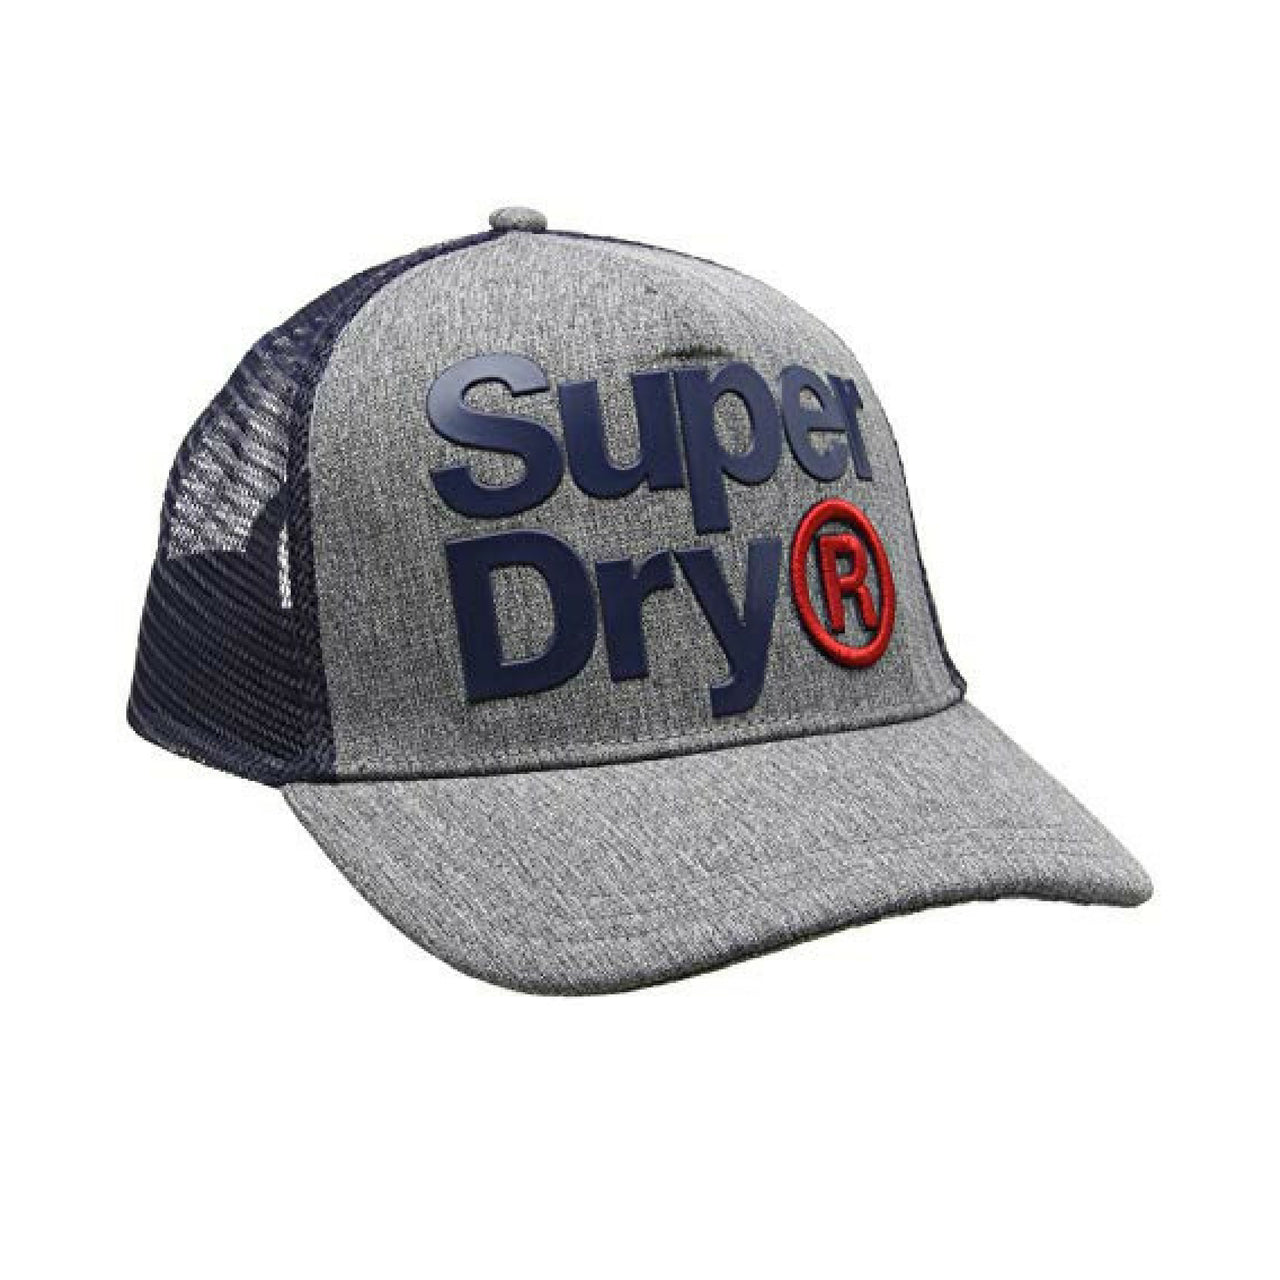 Superdry-Trucker-Cap